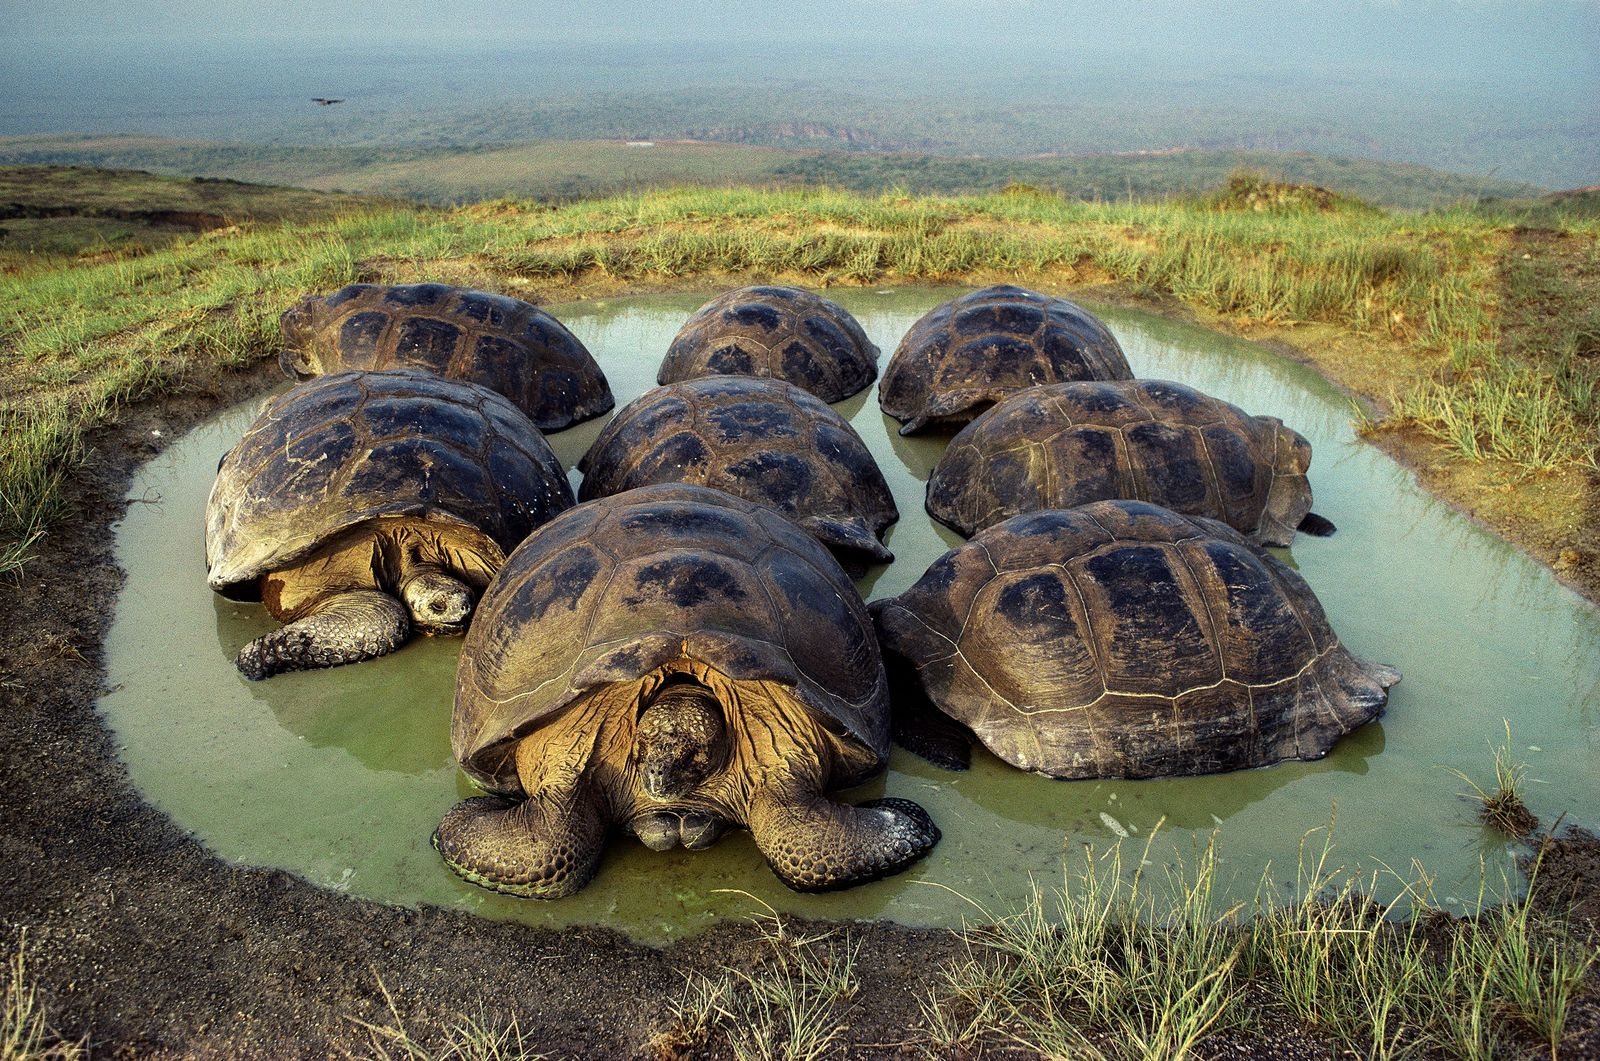 A group of giant tortoises wades in a seasonal pond on Alcedo Volcano, one of six ...